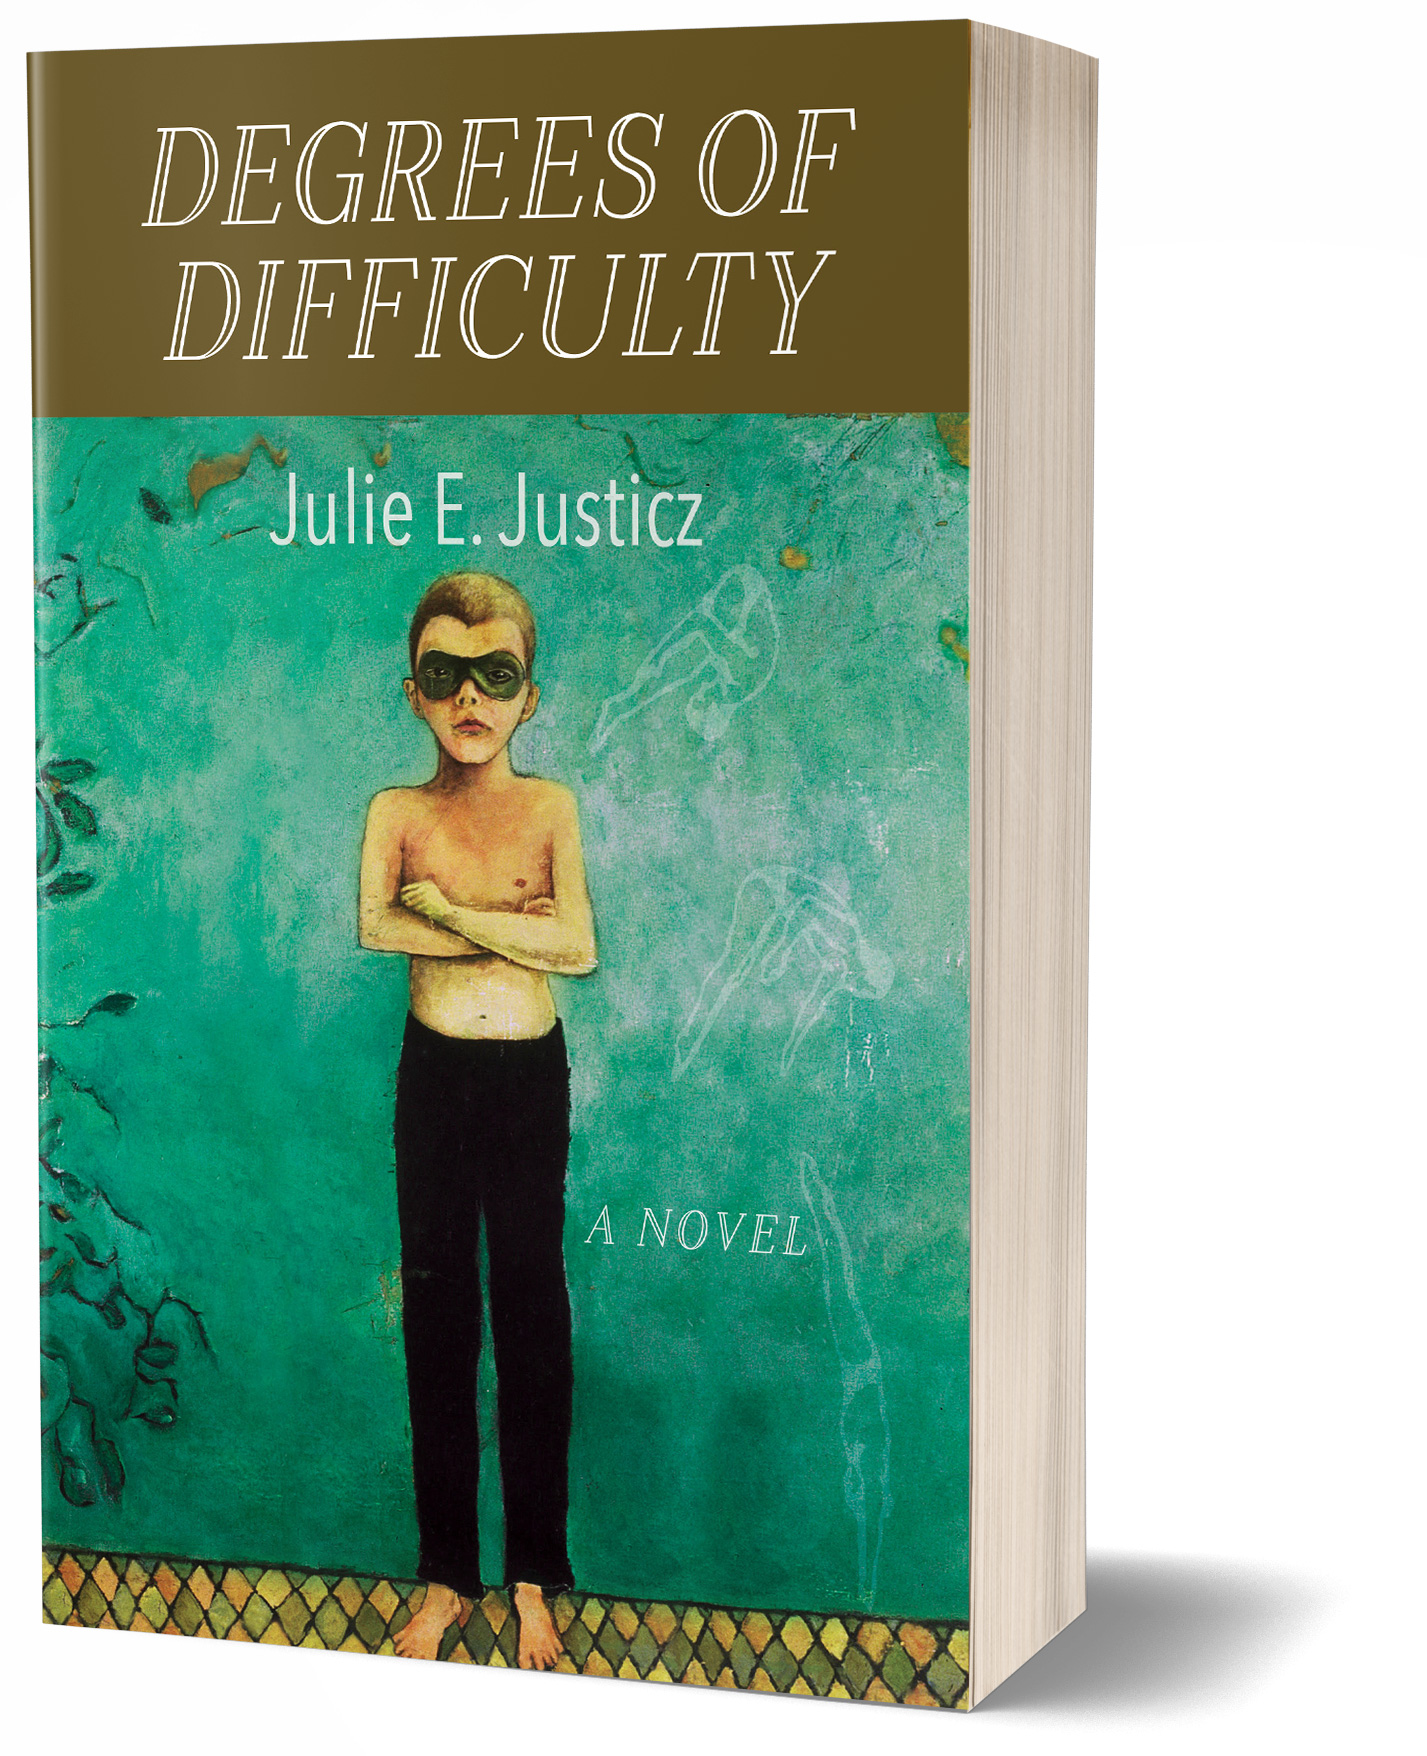 Degrees of Difficulty softcover book